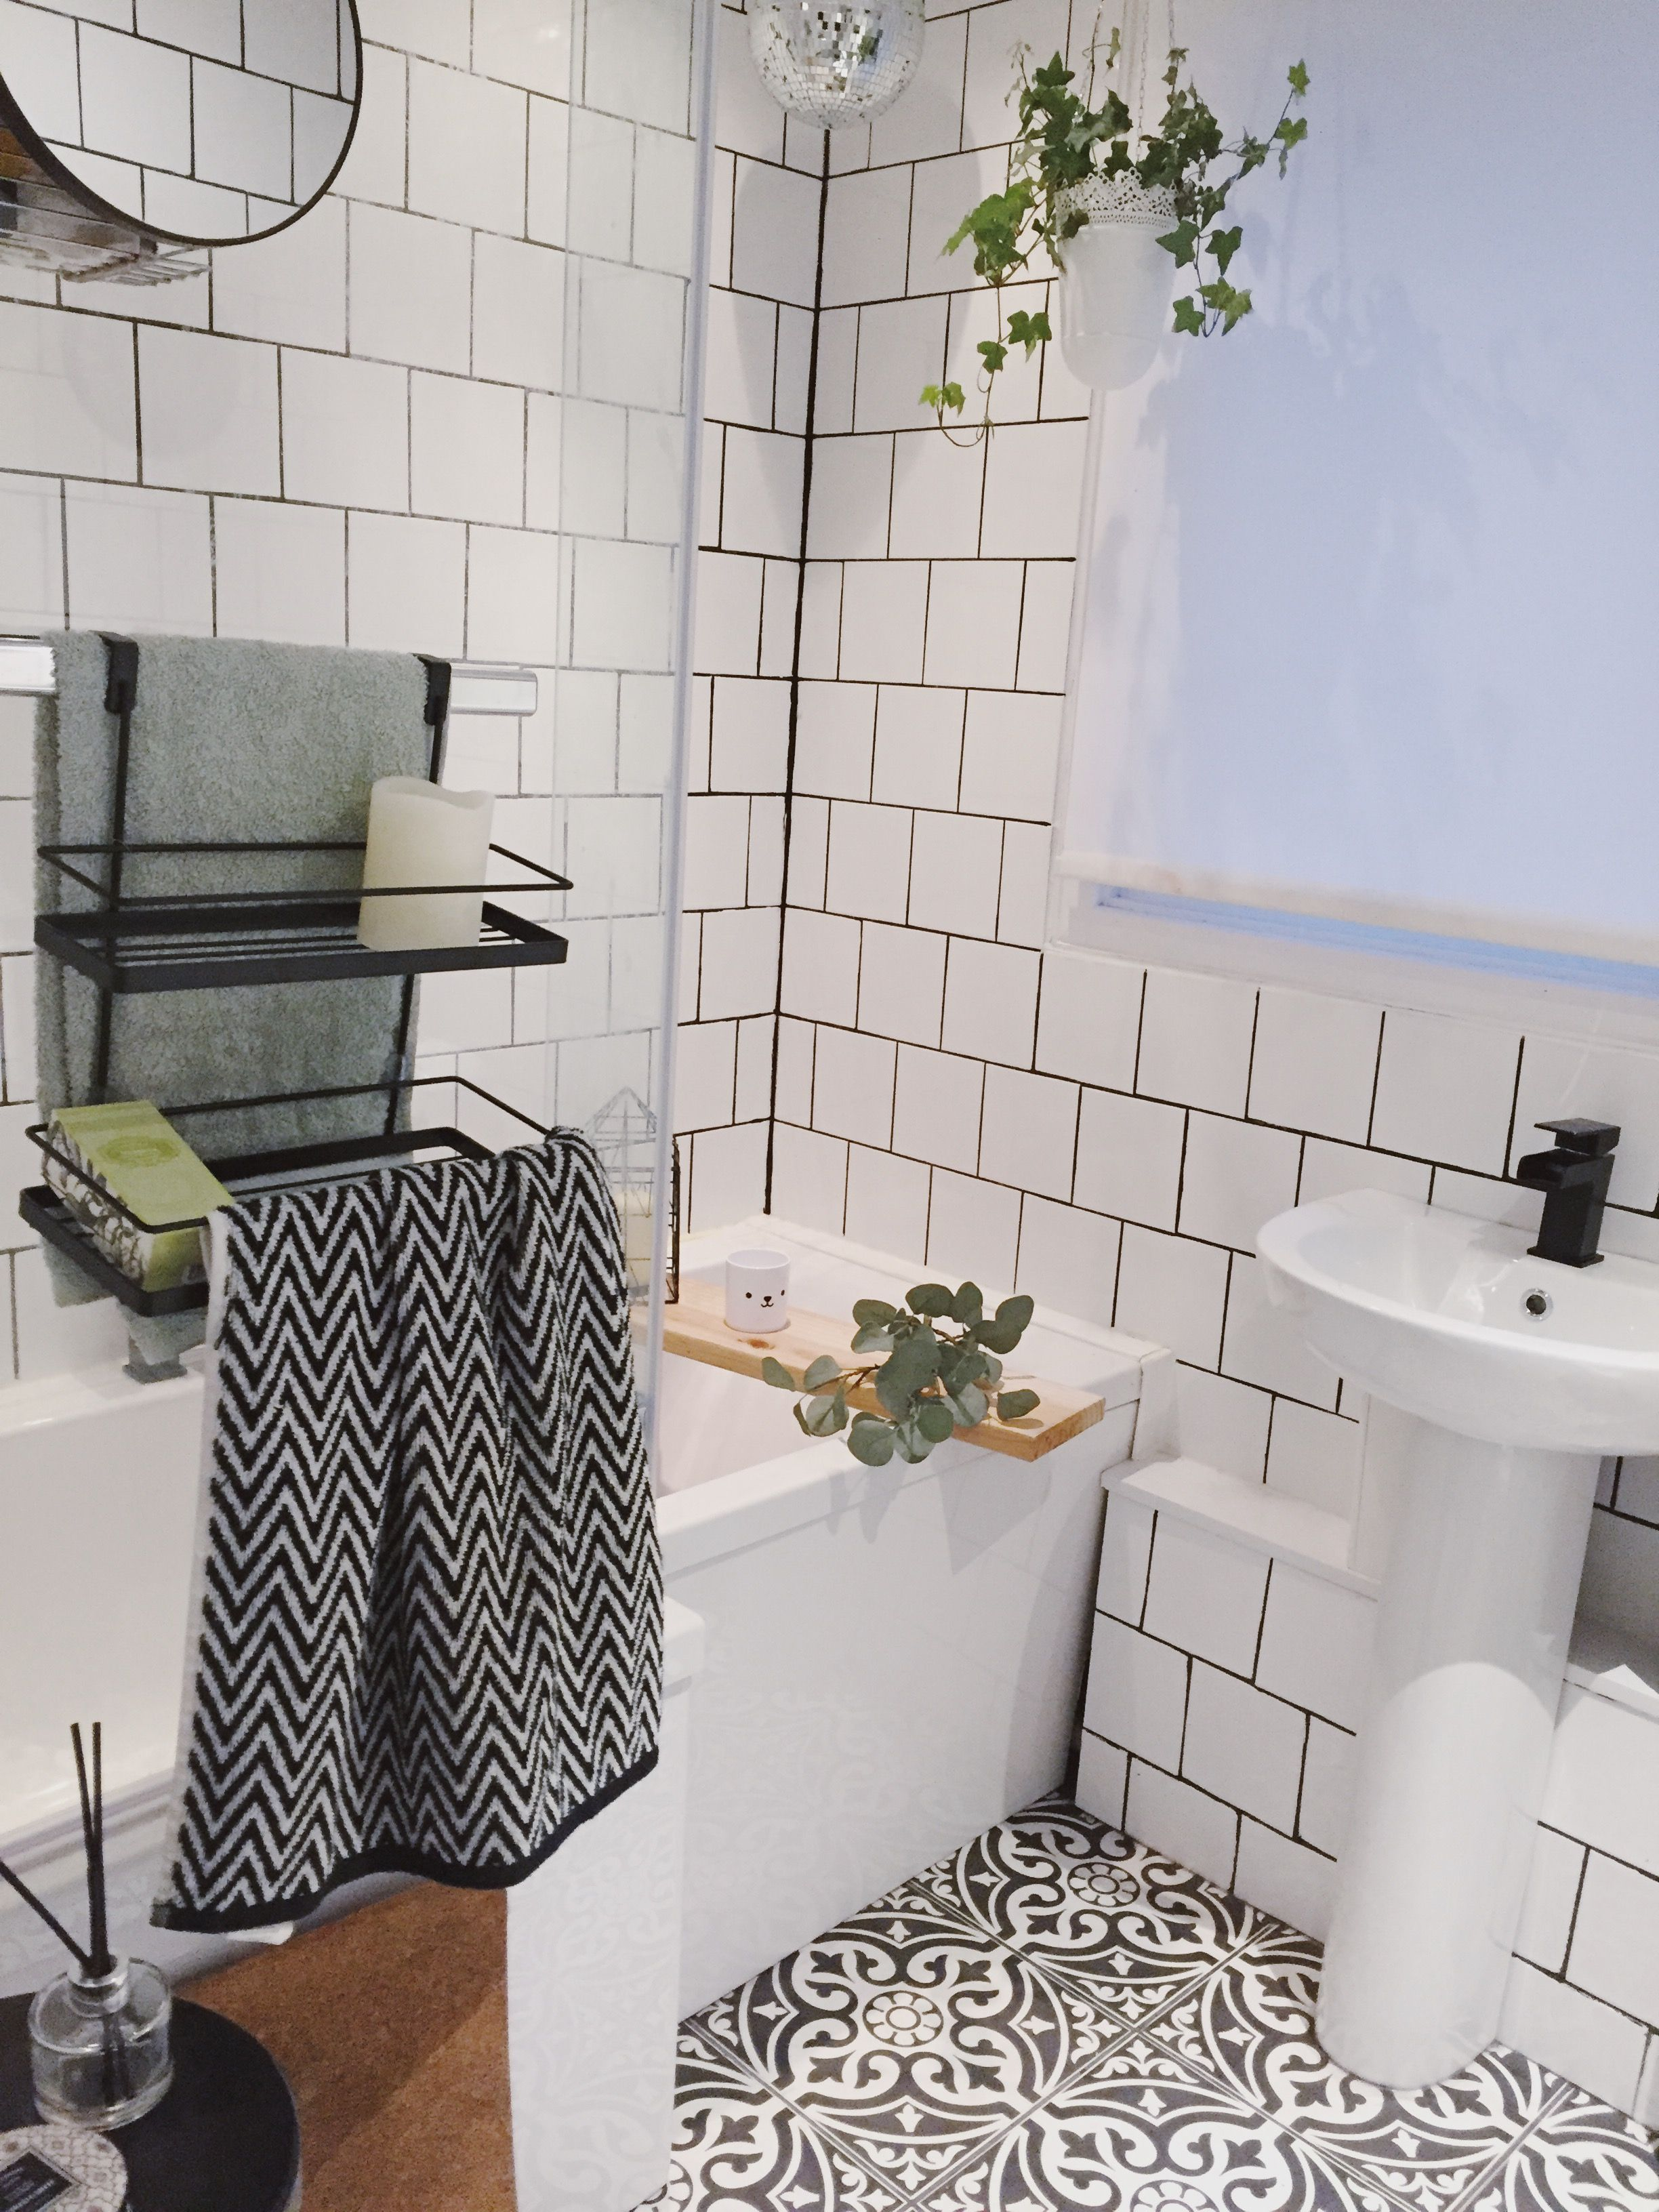 Modern Monochrome Bathroom White Square Tile And Black Grout Mapei Black Grout Modern Fam White Bathroom Tiles Monochrome Bathroom Bathroom Wall Tile Design